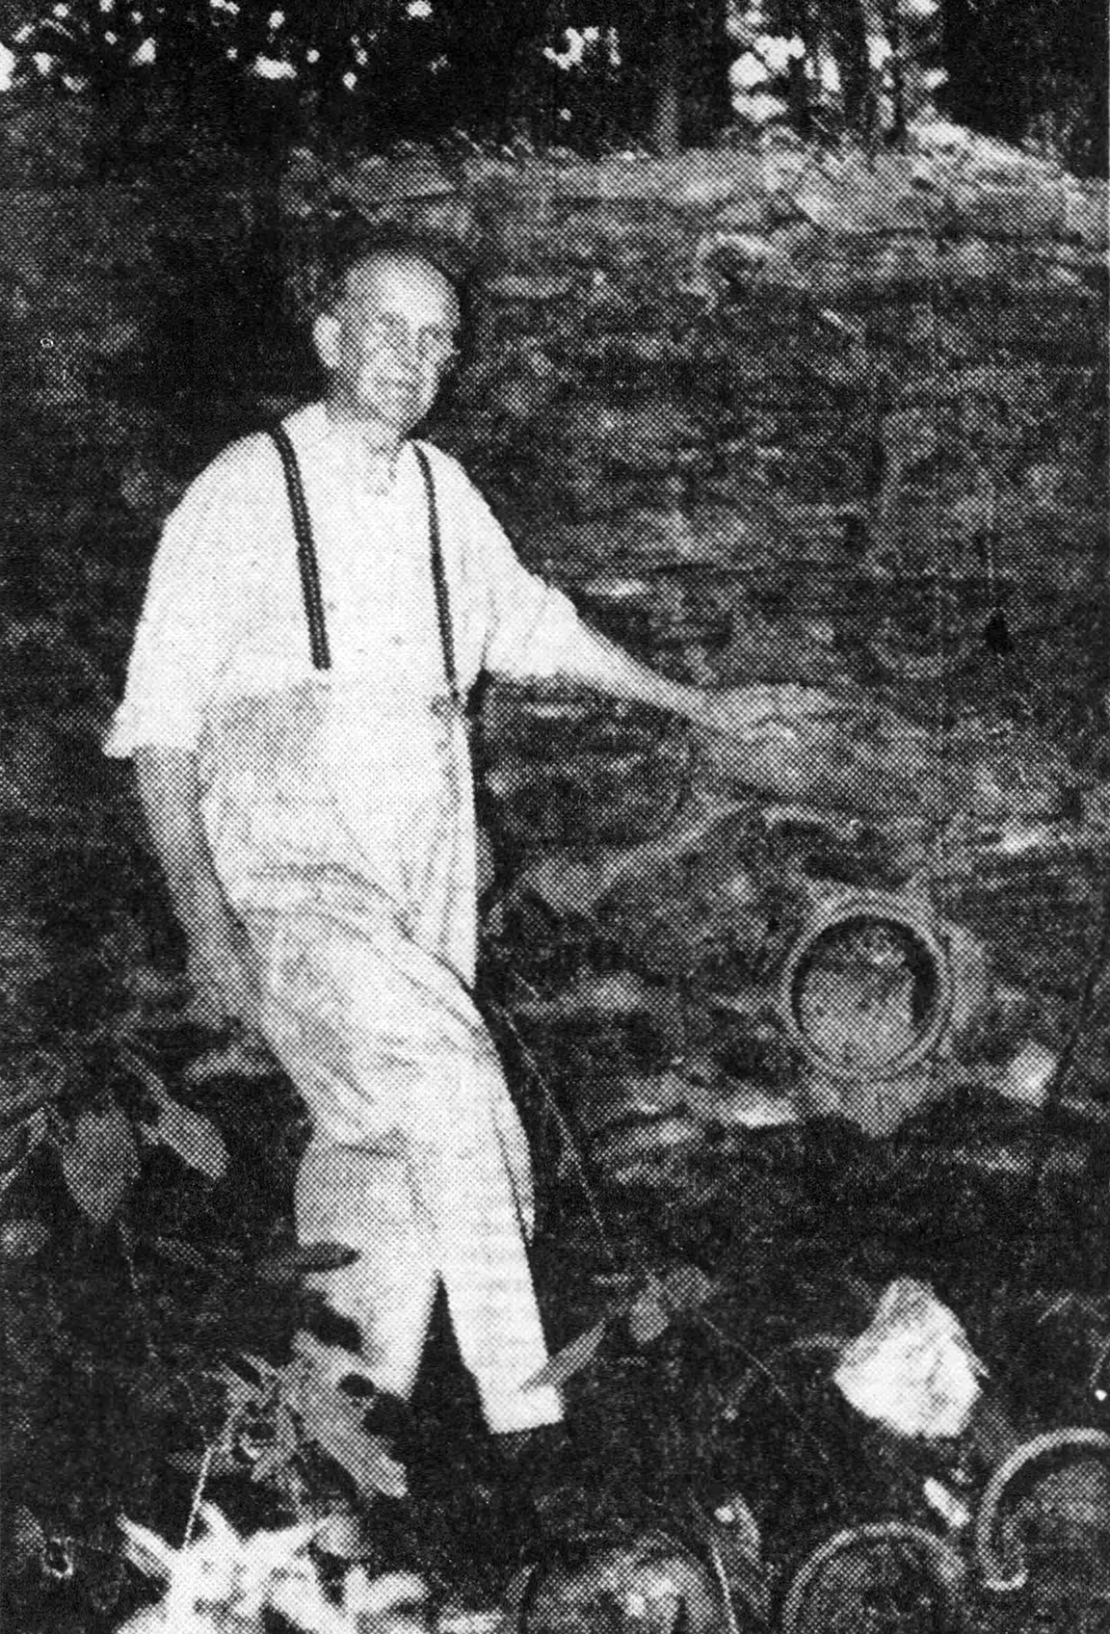 Nearly forty years after construction stopped, Hartman stands next to the foundations of the Pequehanna Inn in 1949.